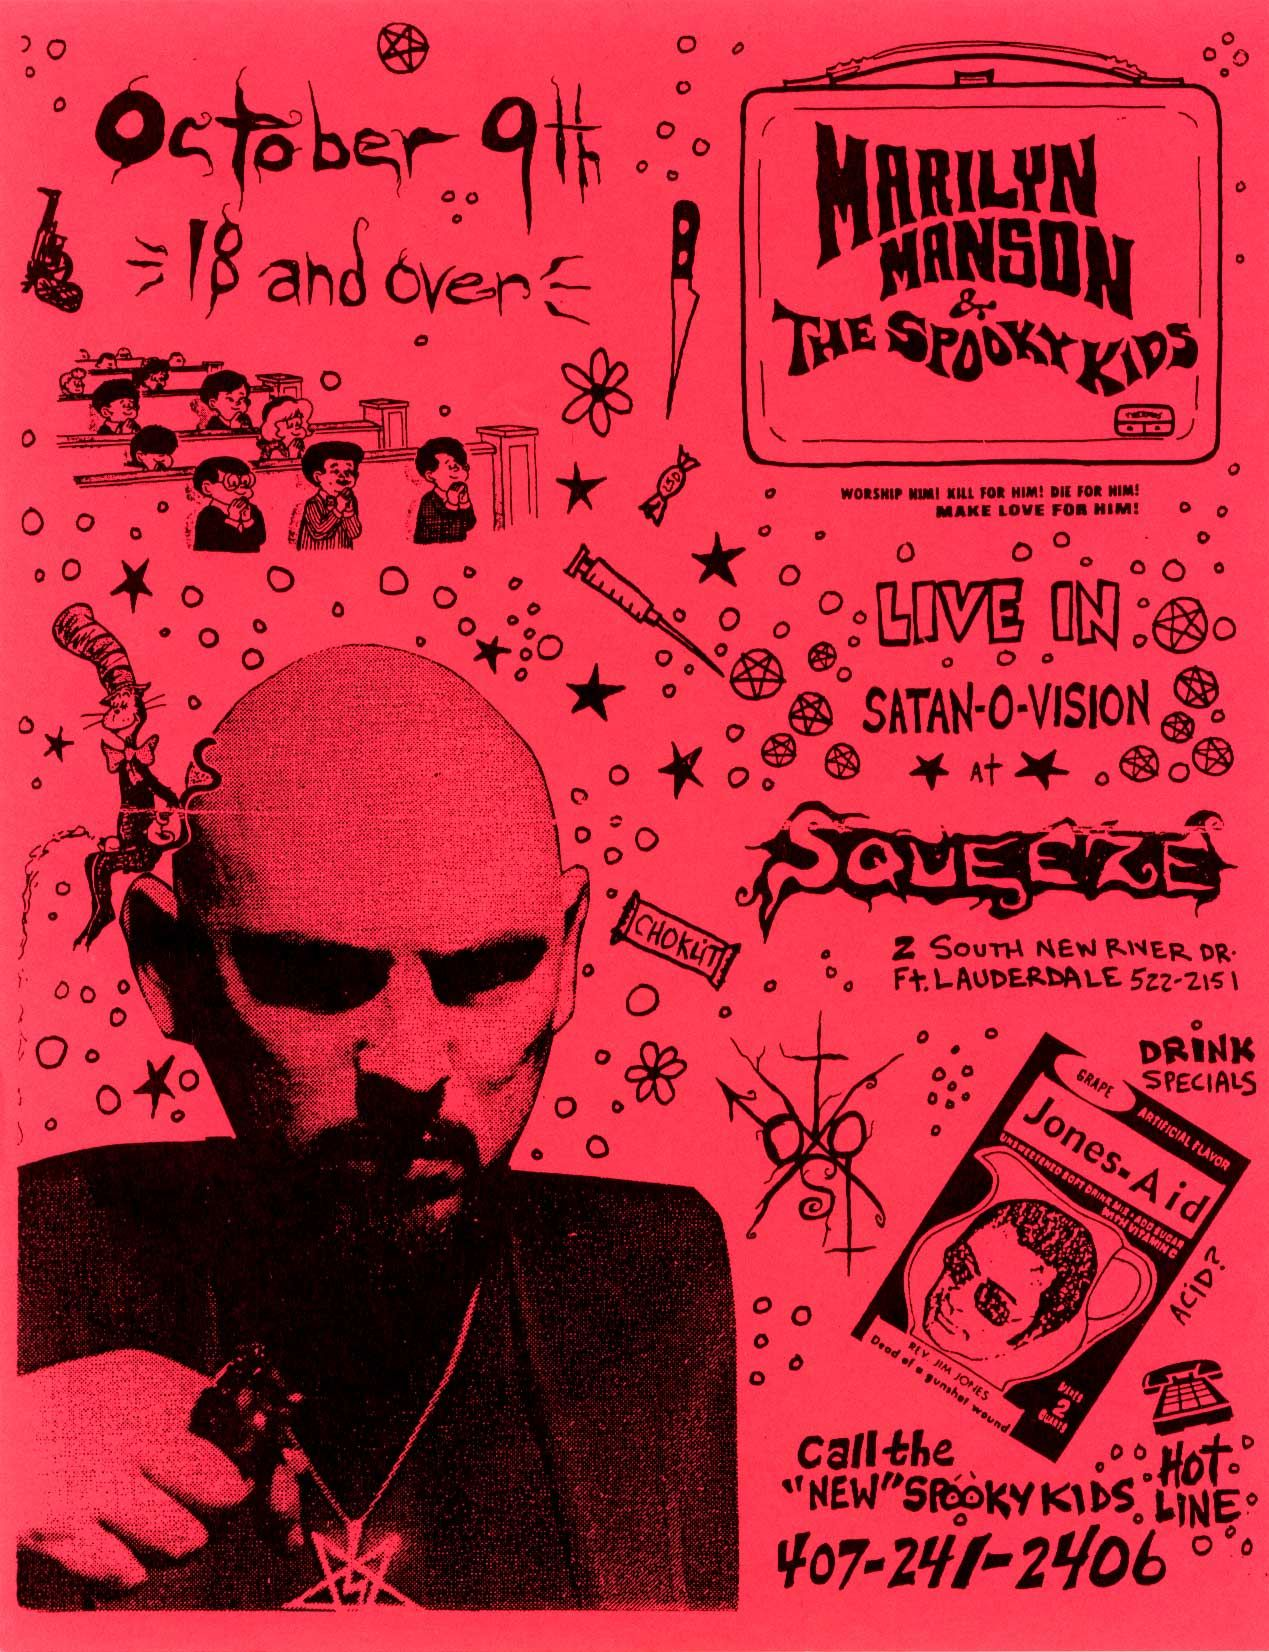 Early Marilyn Manson (and the Spooky Kids) concert flyer